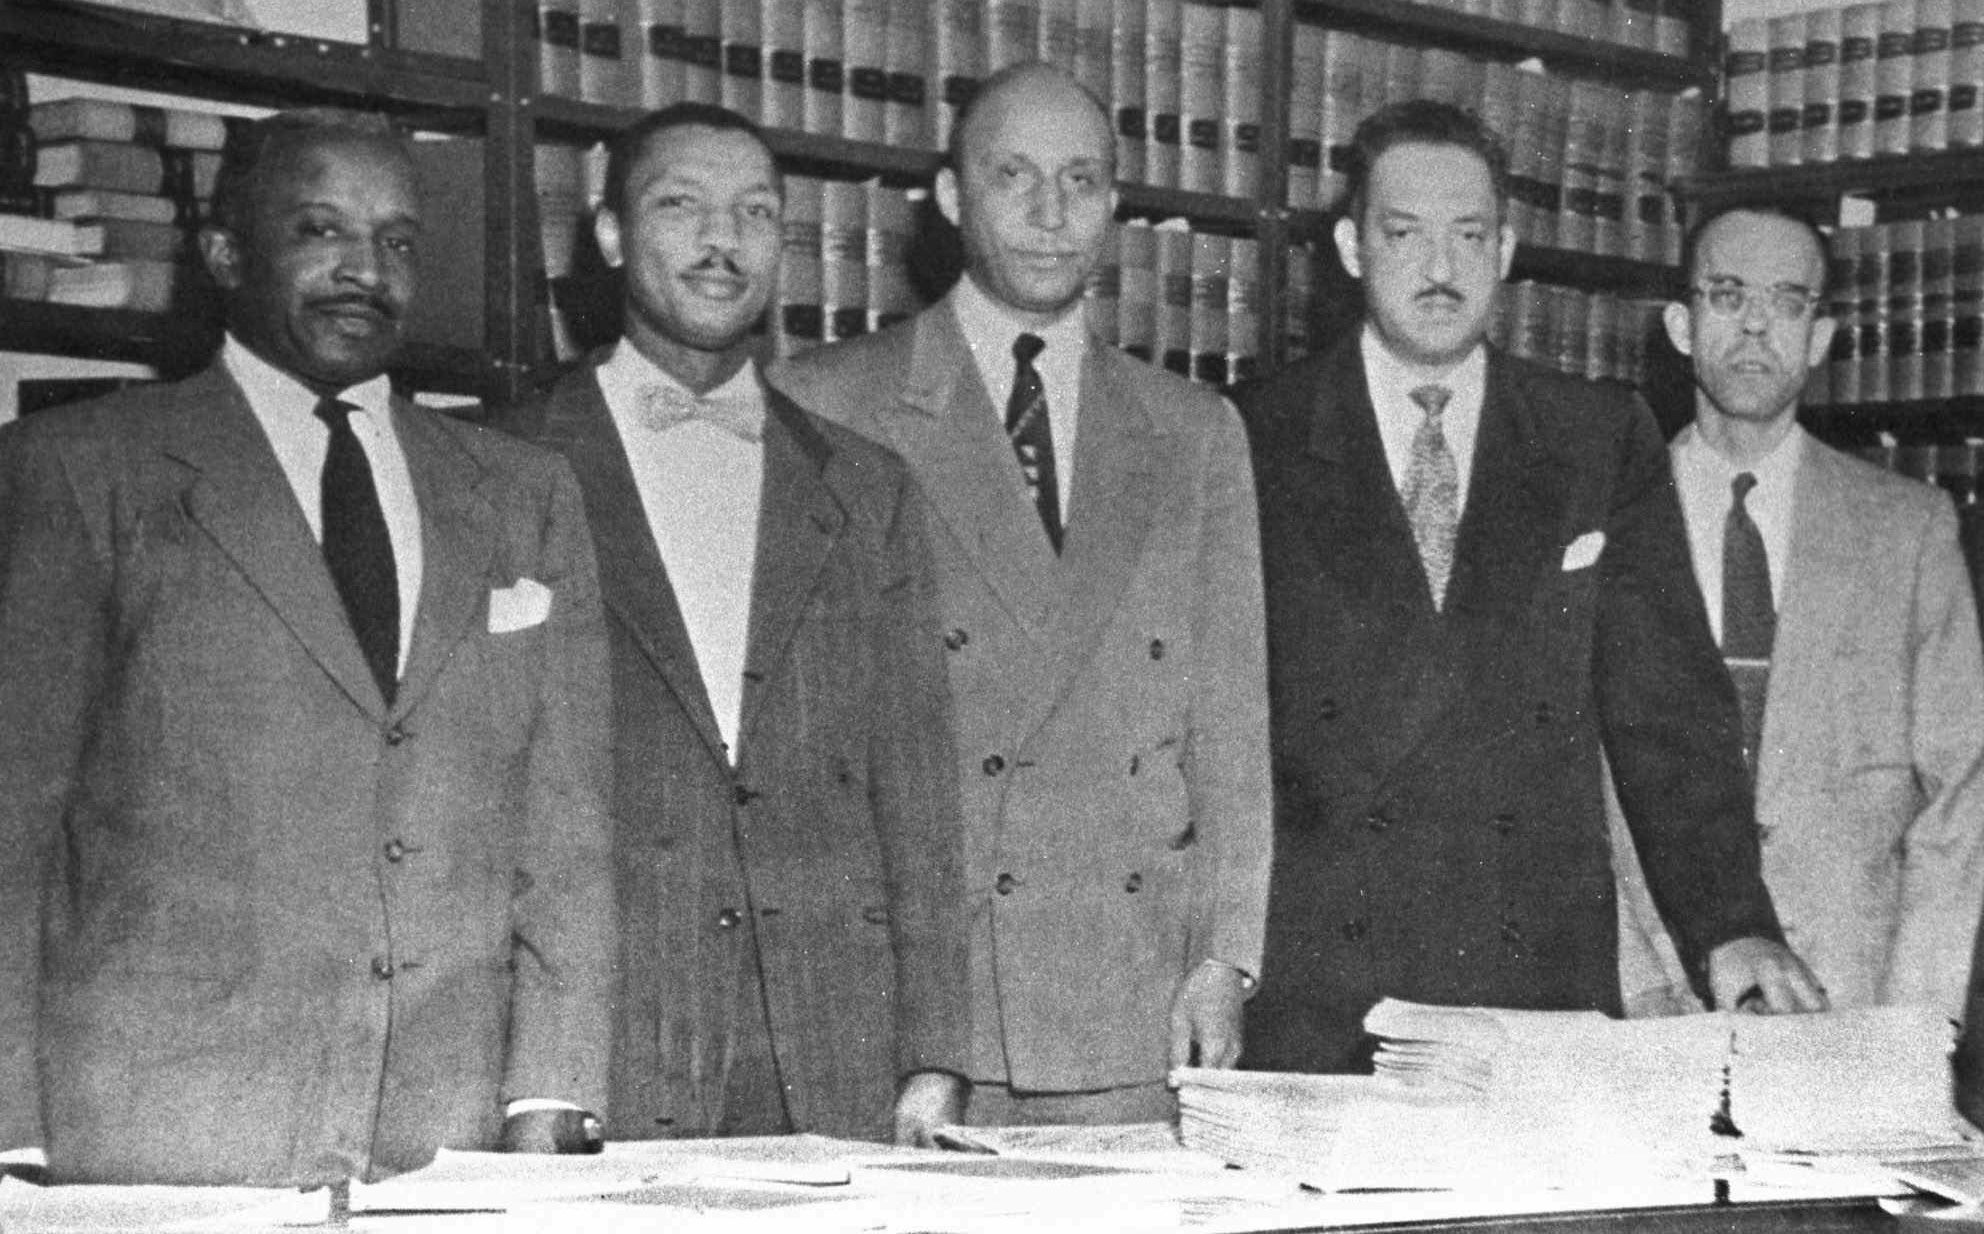 Louis L. Redding; Robert L. Carter; Oliver W. Hil; Thurgood Marshall; Spottswood W. Robinson III.